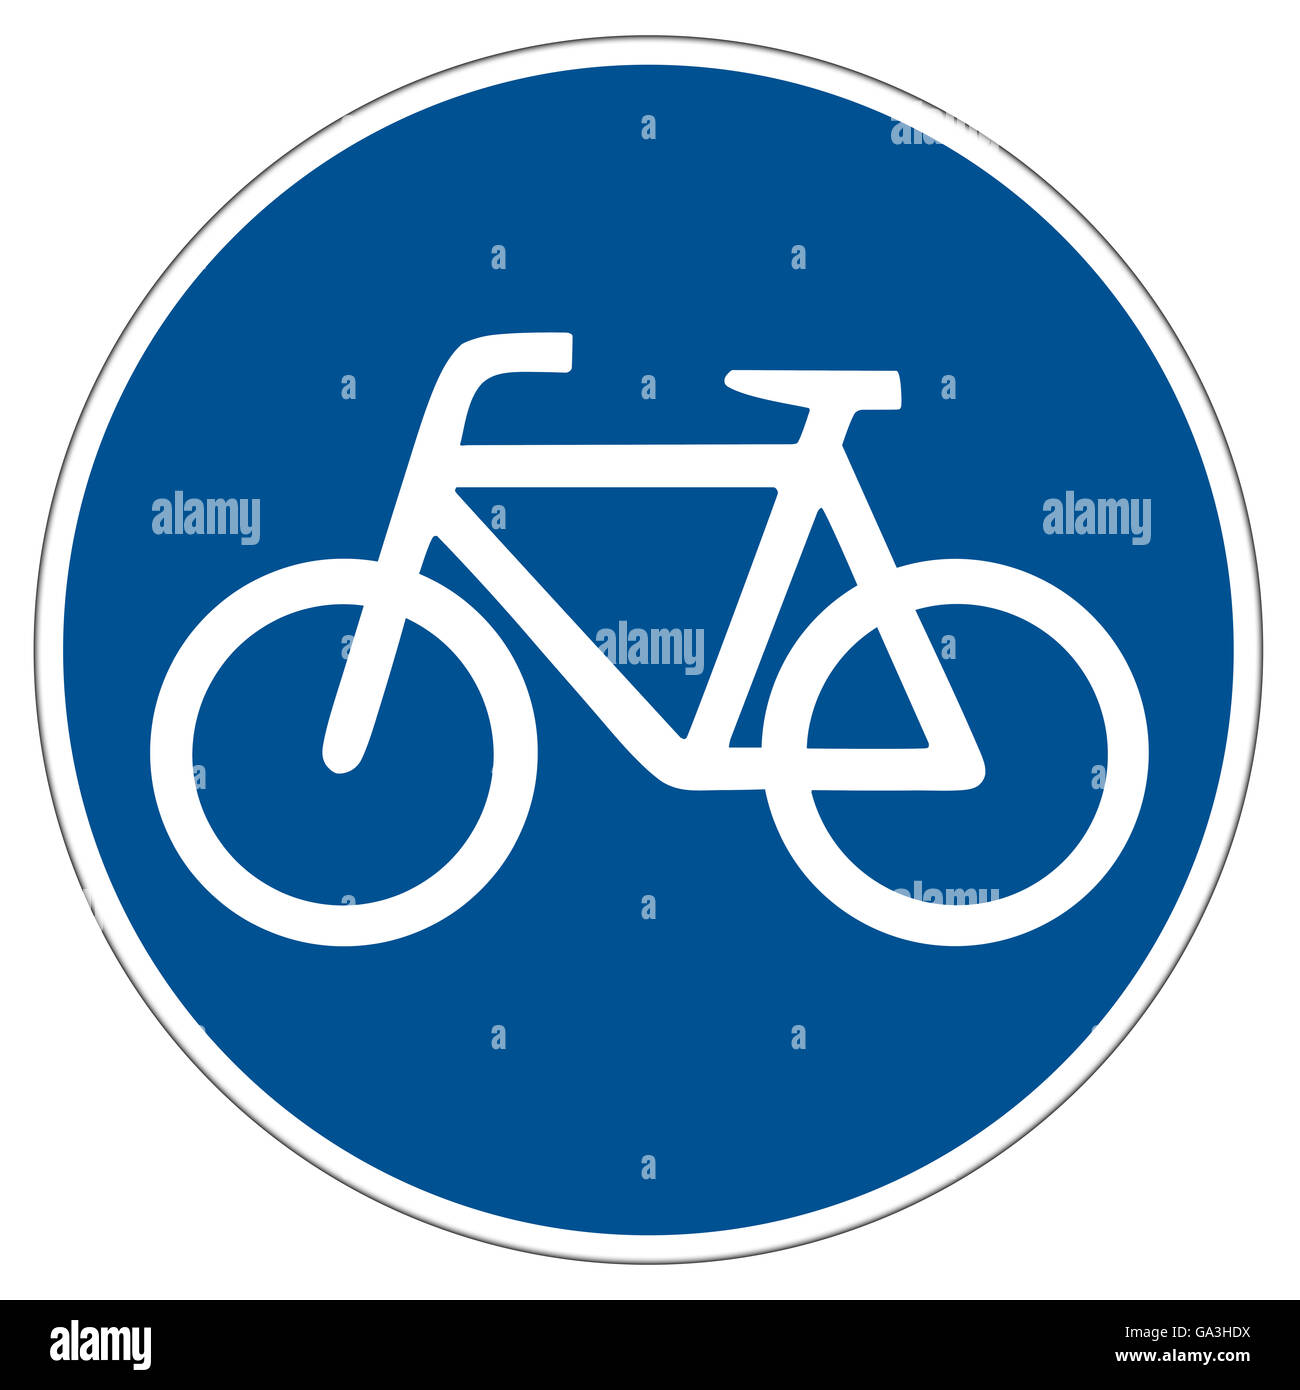 illustration of a german bicycle lane sign isolated on white background - Stock Image